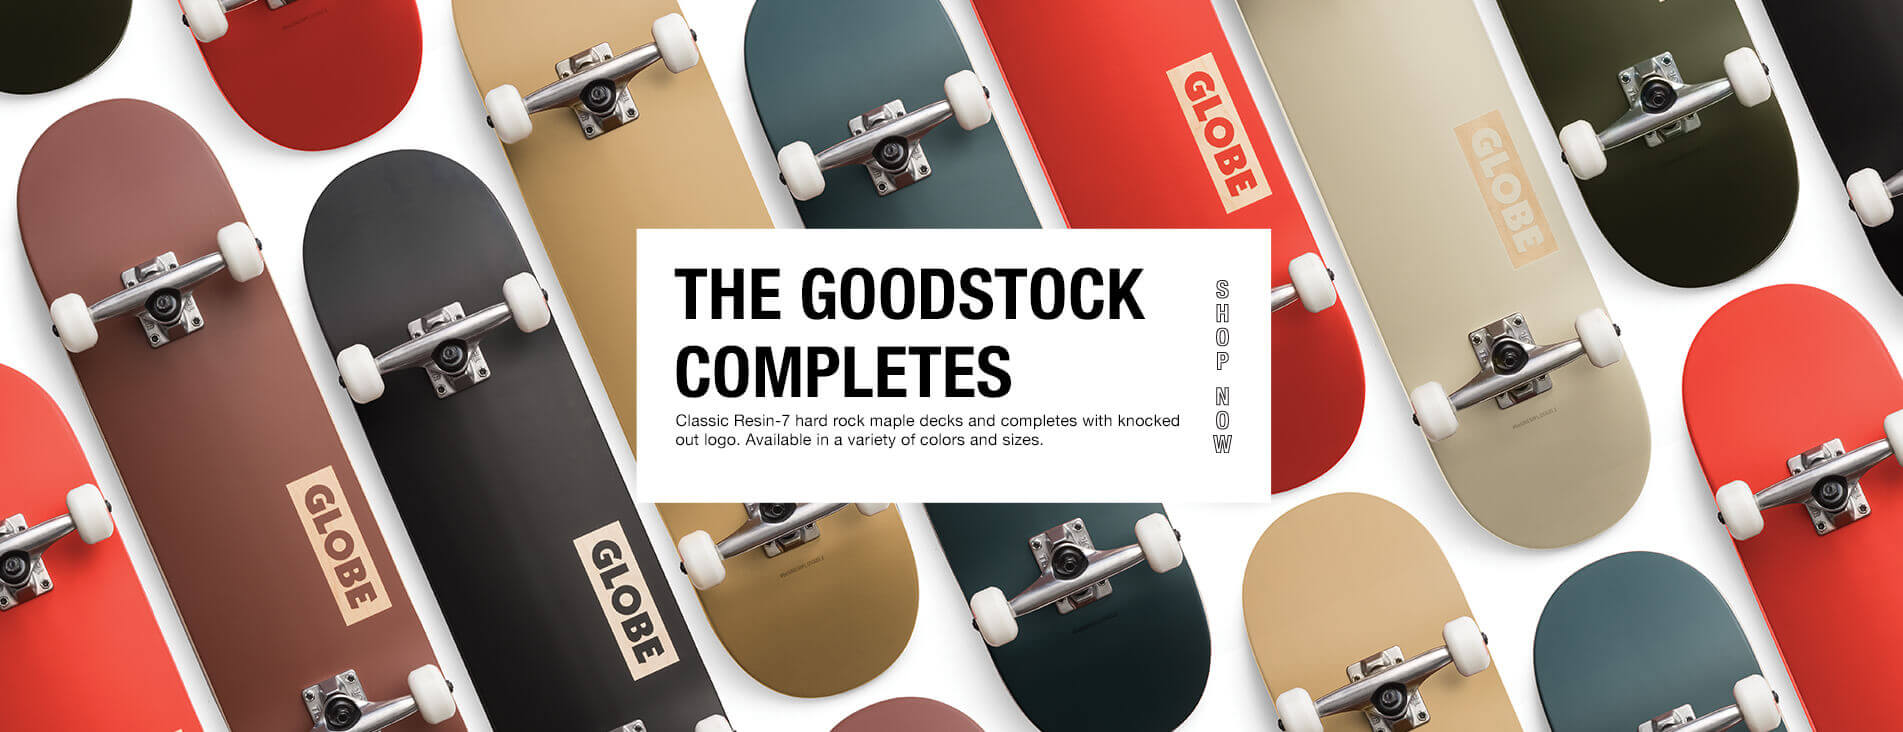 Goodstock completes skateboards